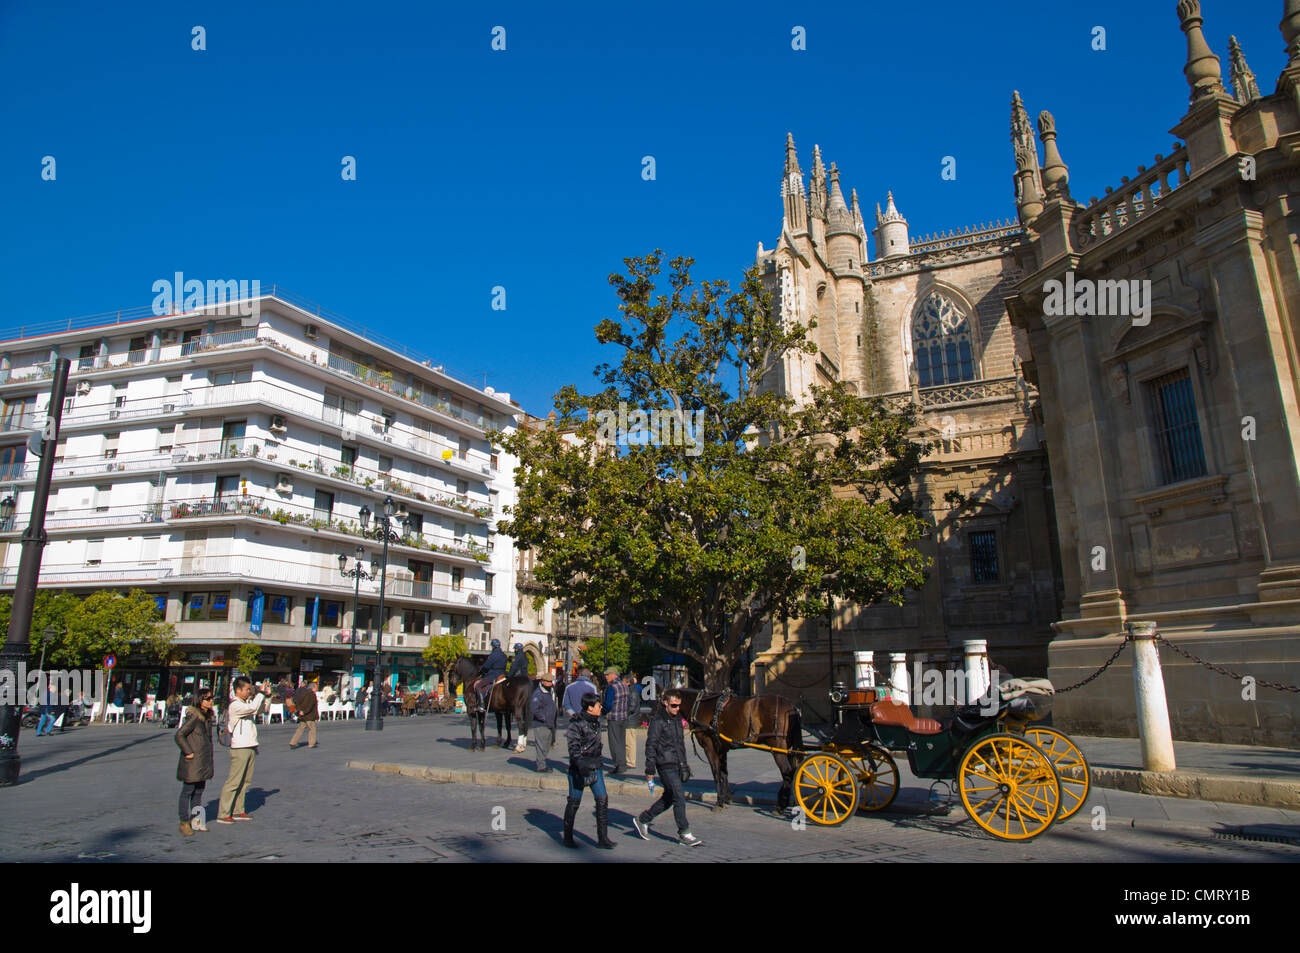 Calle stock photos calle stock images alamy for Inside genova madrid